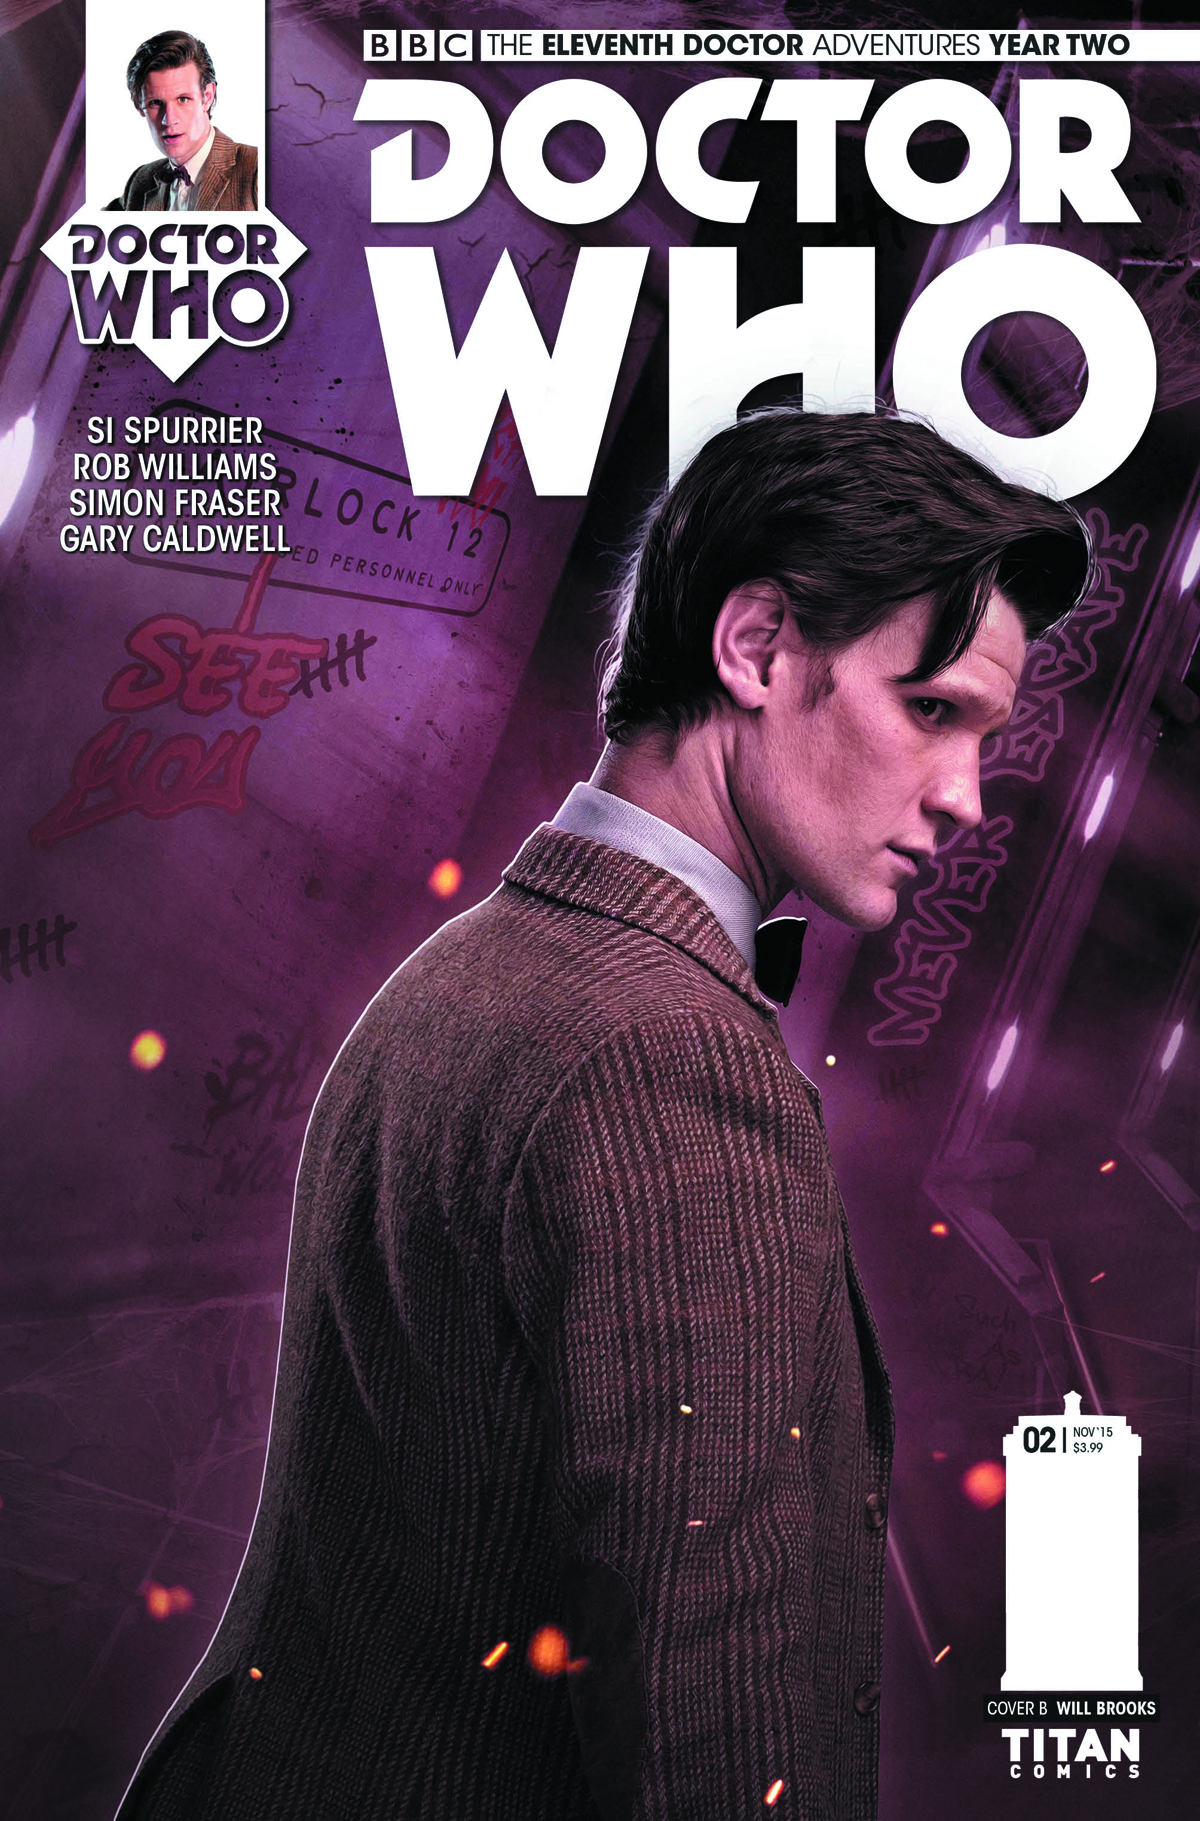 DOCTOR WHO 11TH YEAR TWO #3 SUBSCRIPTION PHOTO